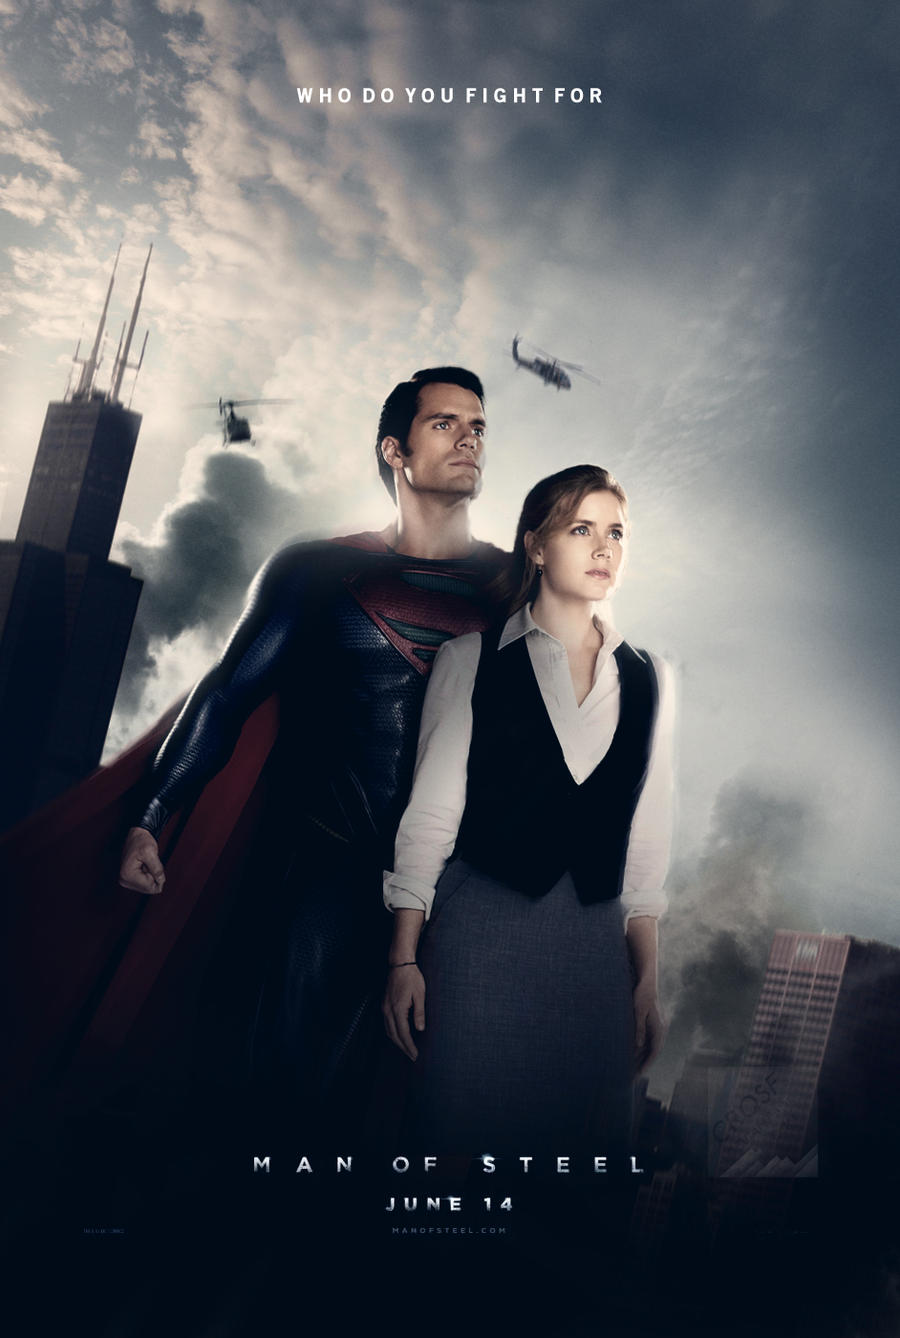 Man of Steel Posters - Page 17 | Nolan Fans Forums